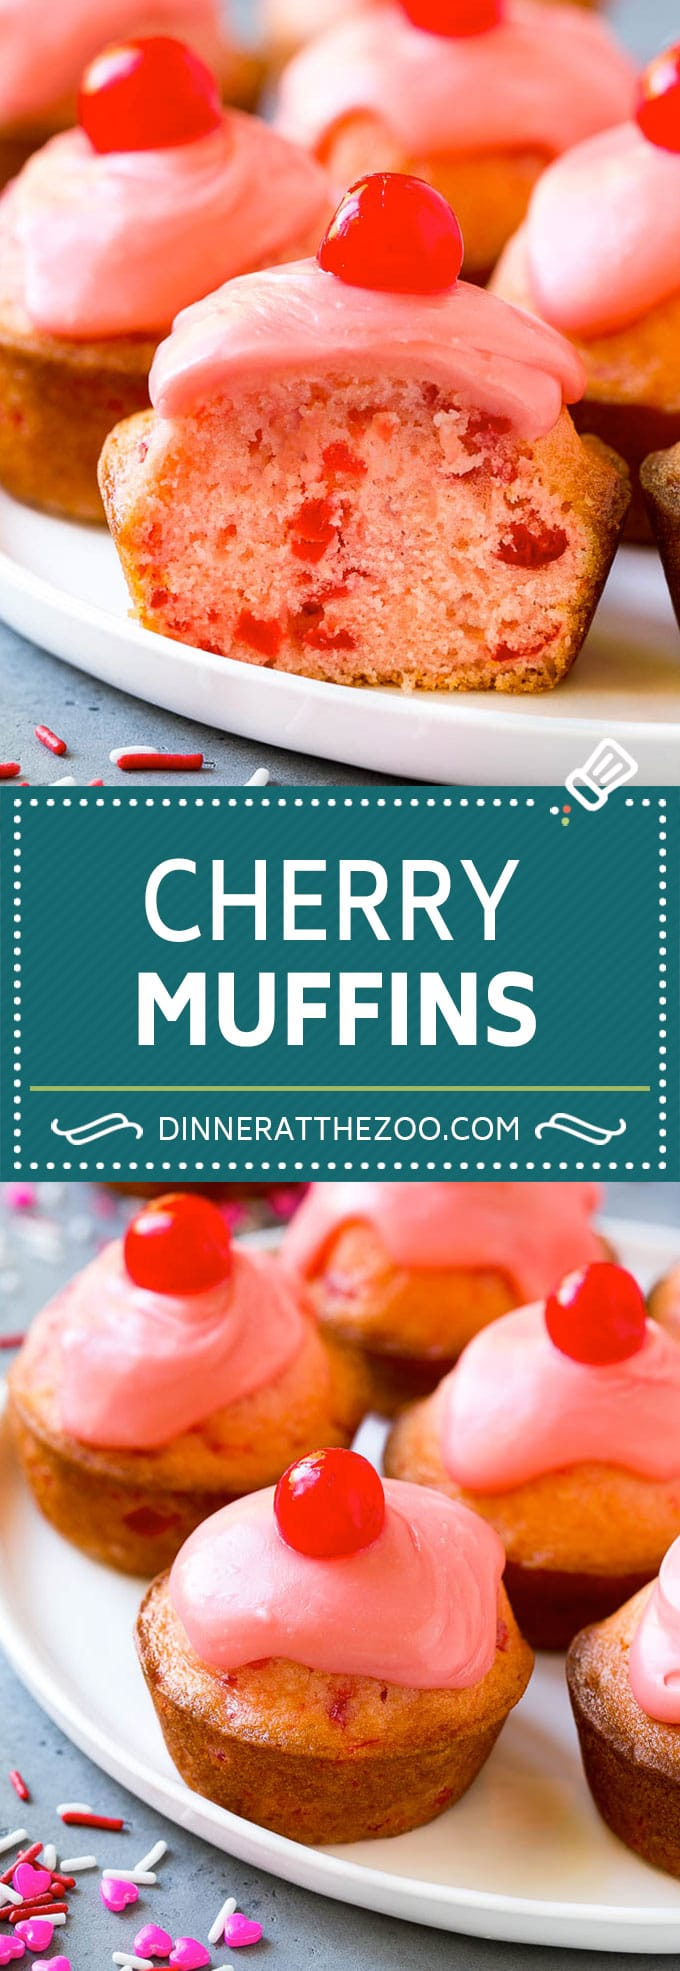 Cherry Muffins Recipe | Maraschino Cherry Muffins #cherries #cherry #muffins #baking #dessert #sweets #dinneratthezoo